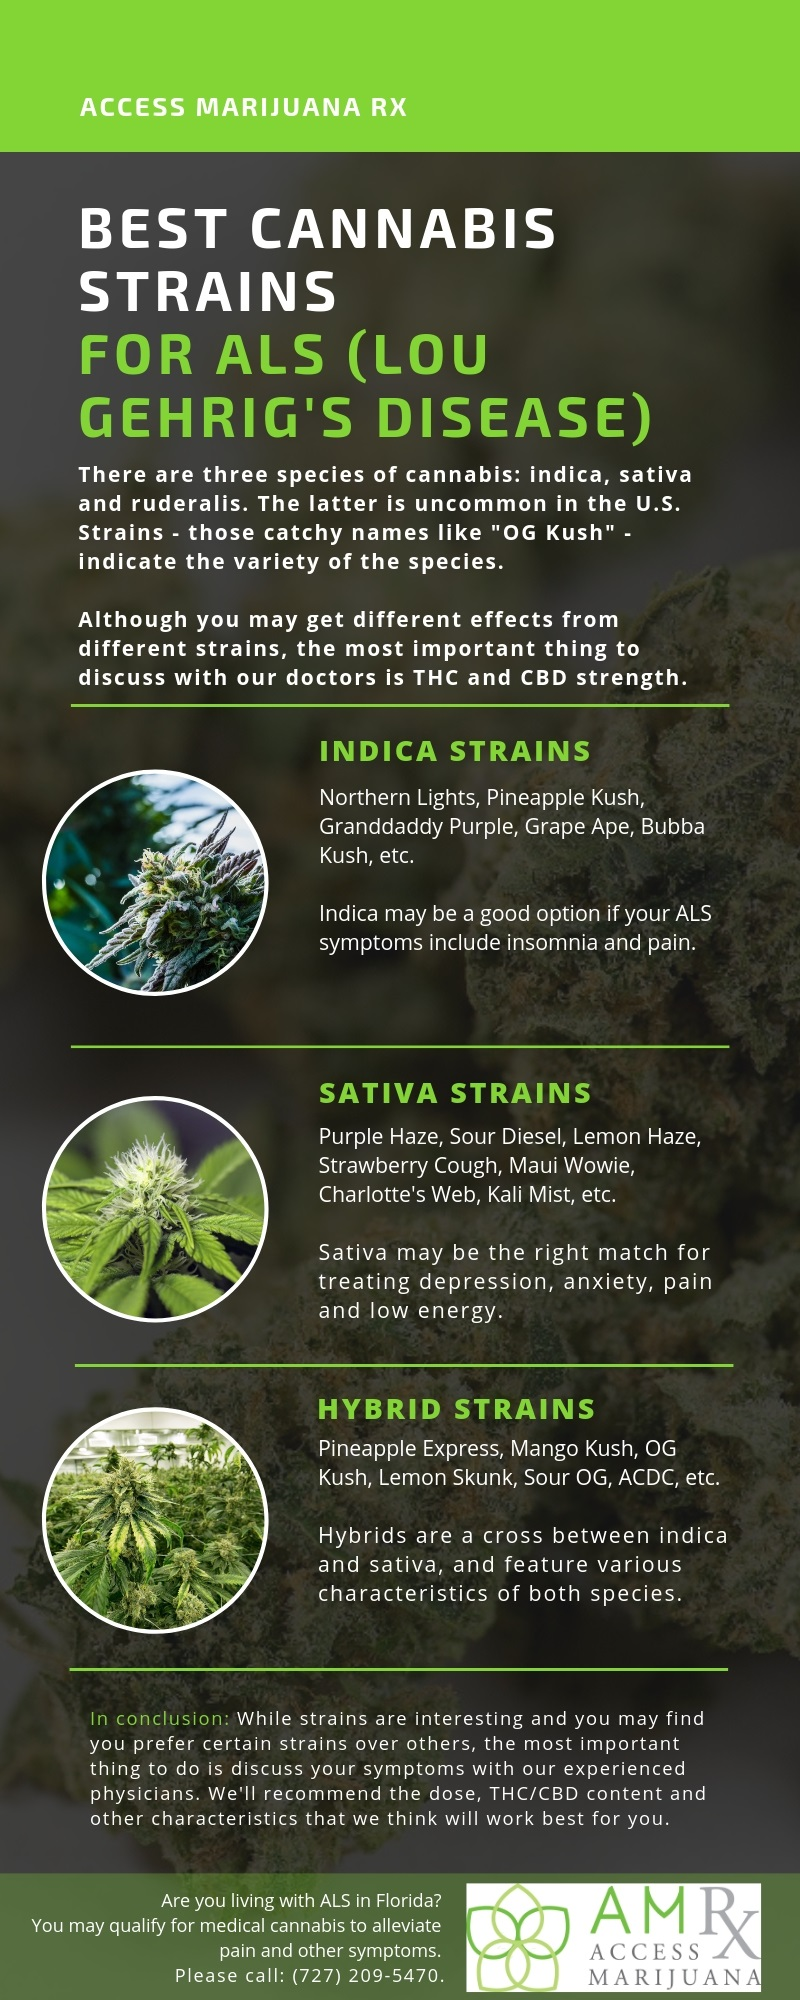 Infographic discussing the best strains for the symptoms of ALS